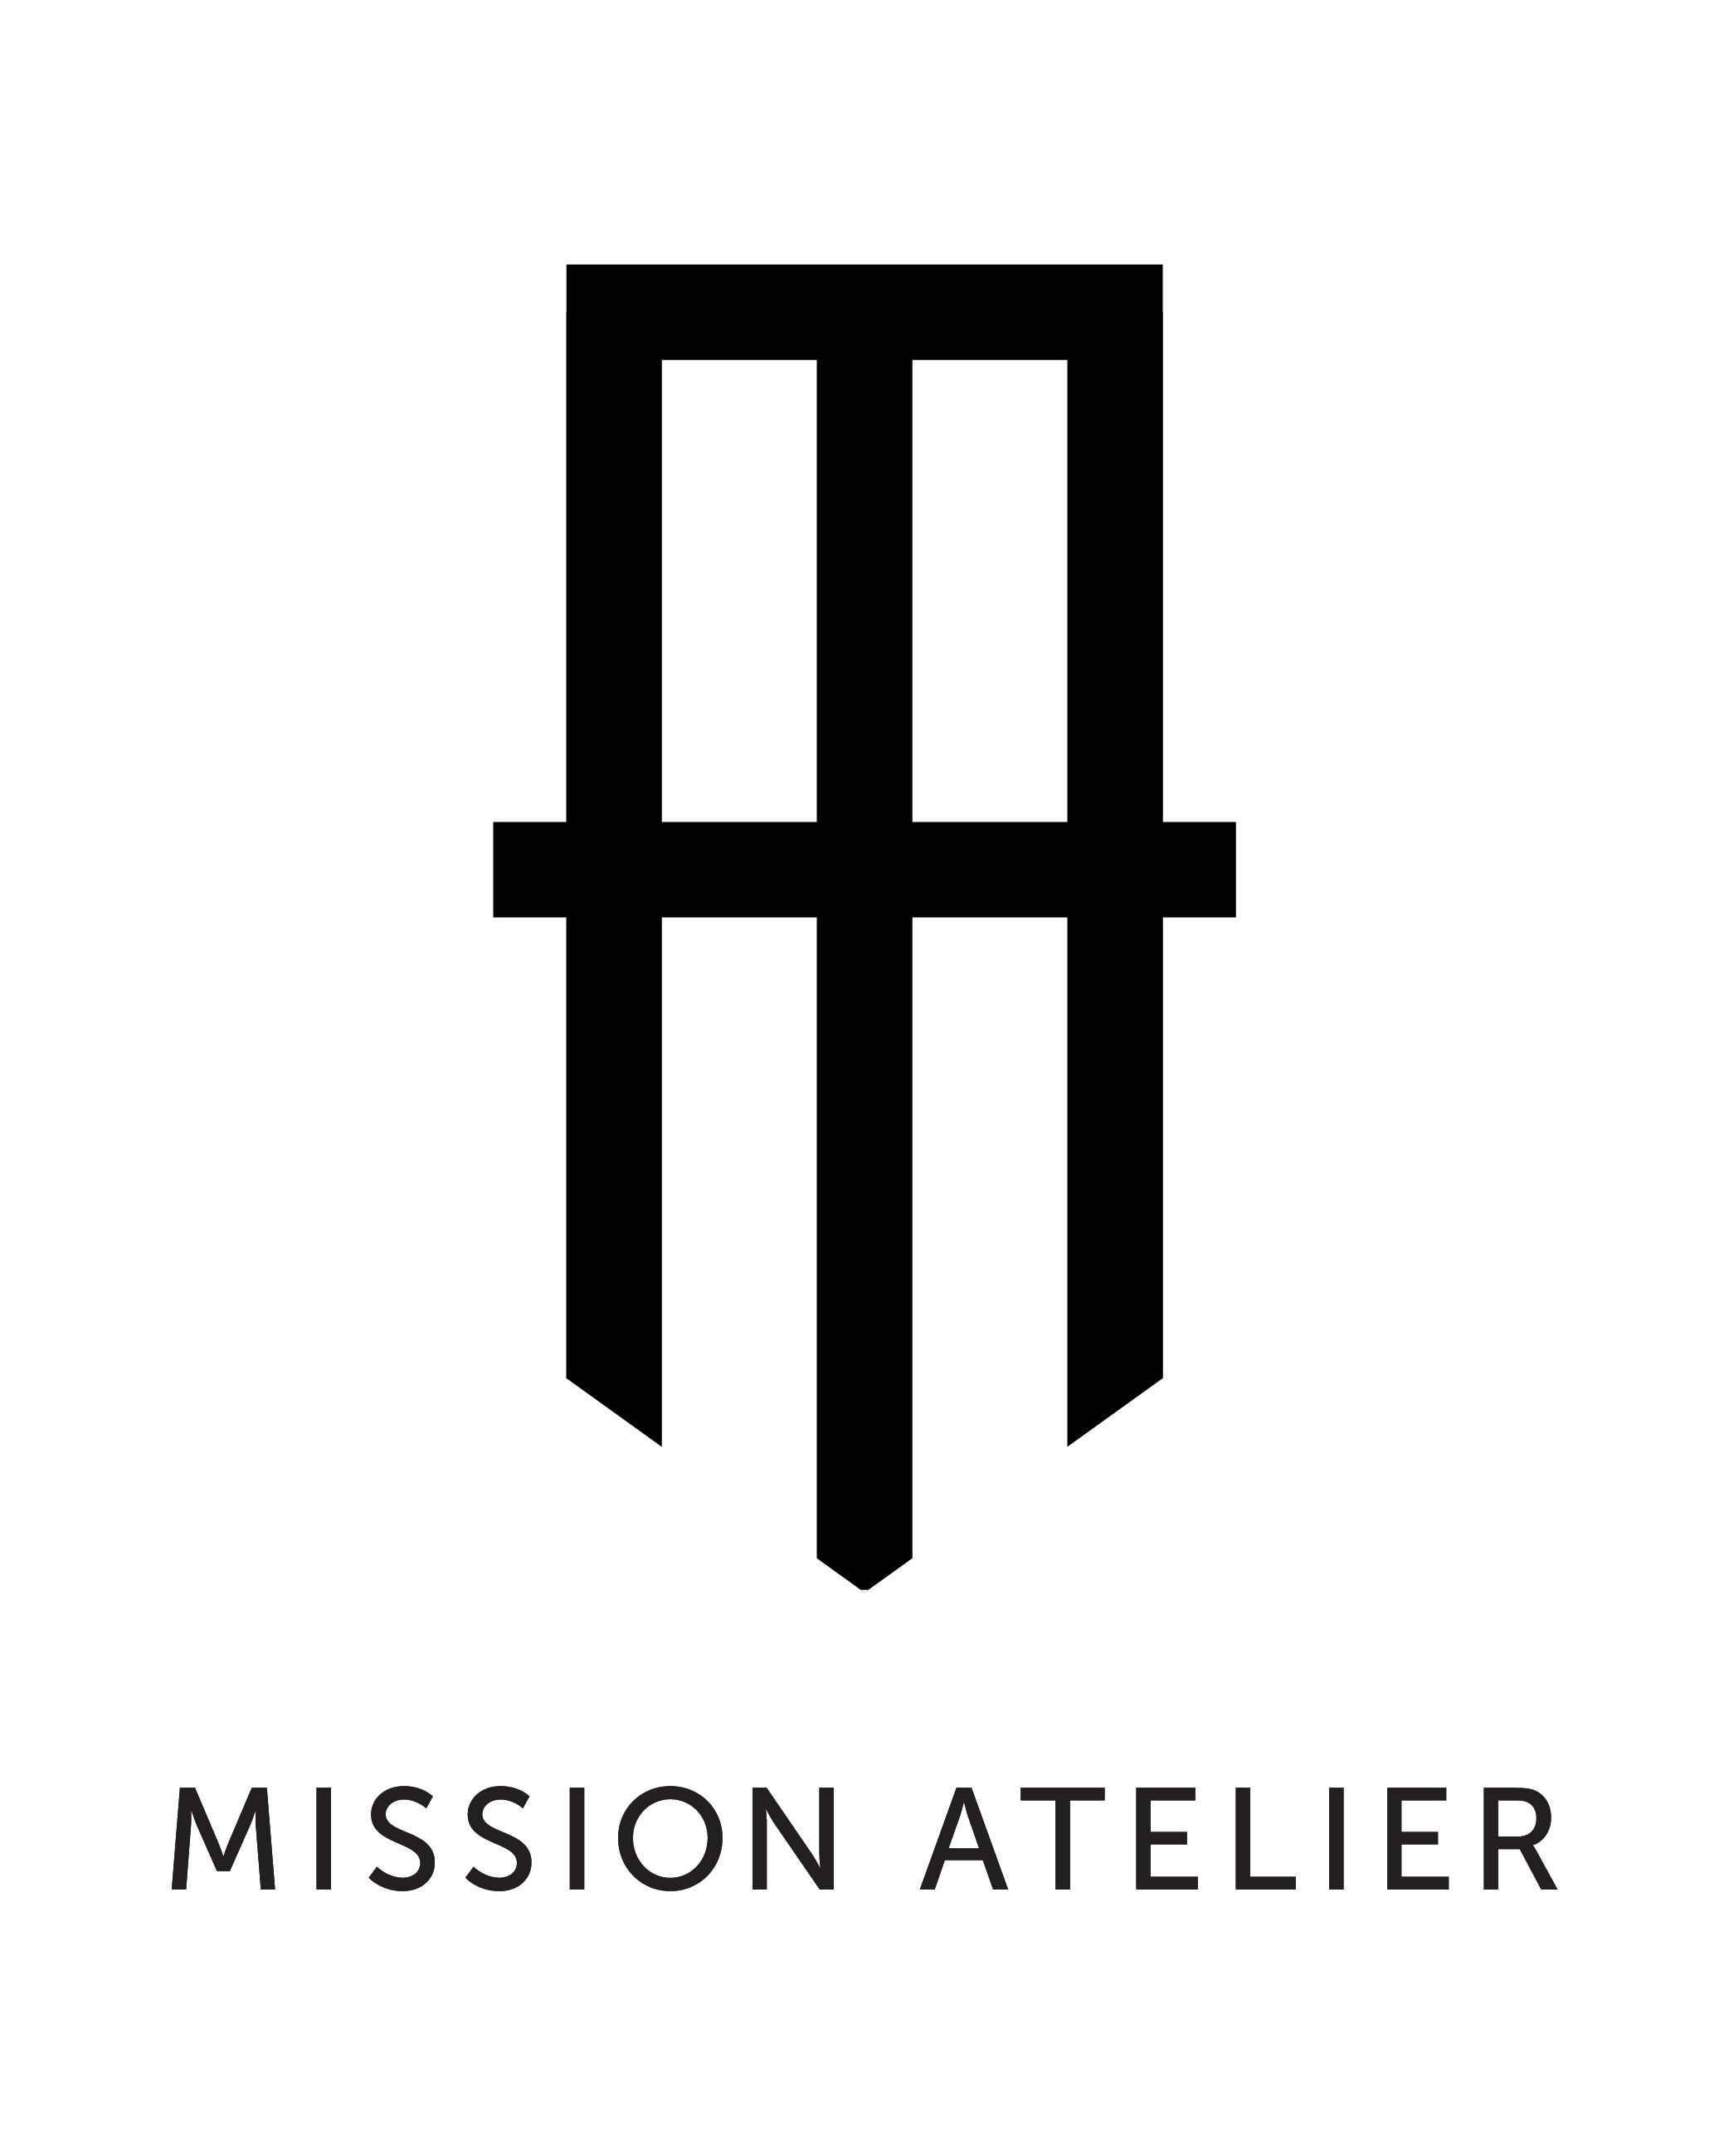 Mission Atelier Helps People Look and Feel Their Best